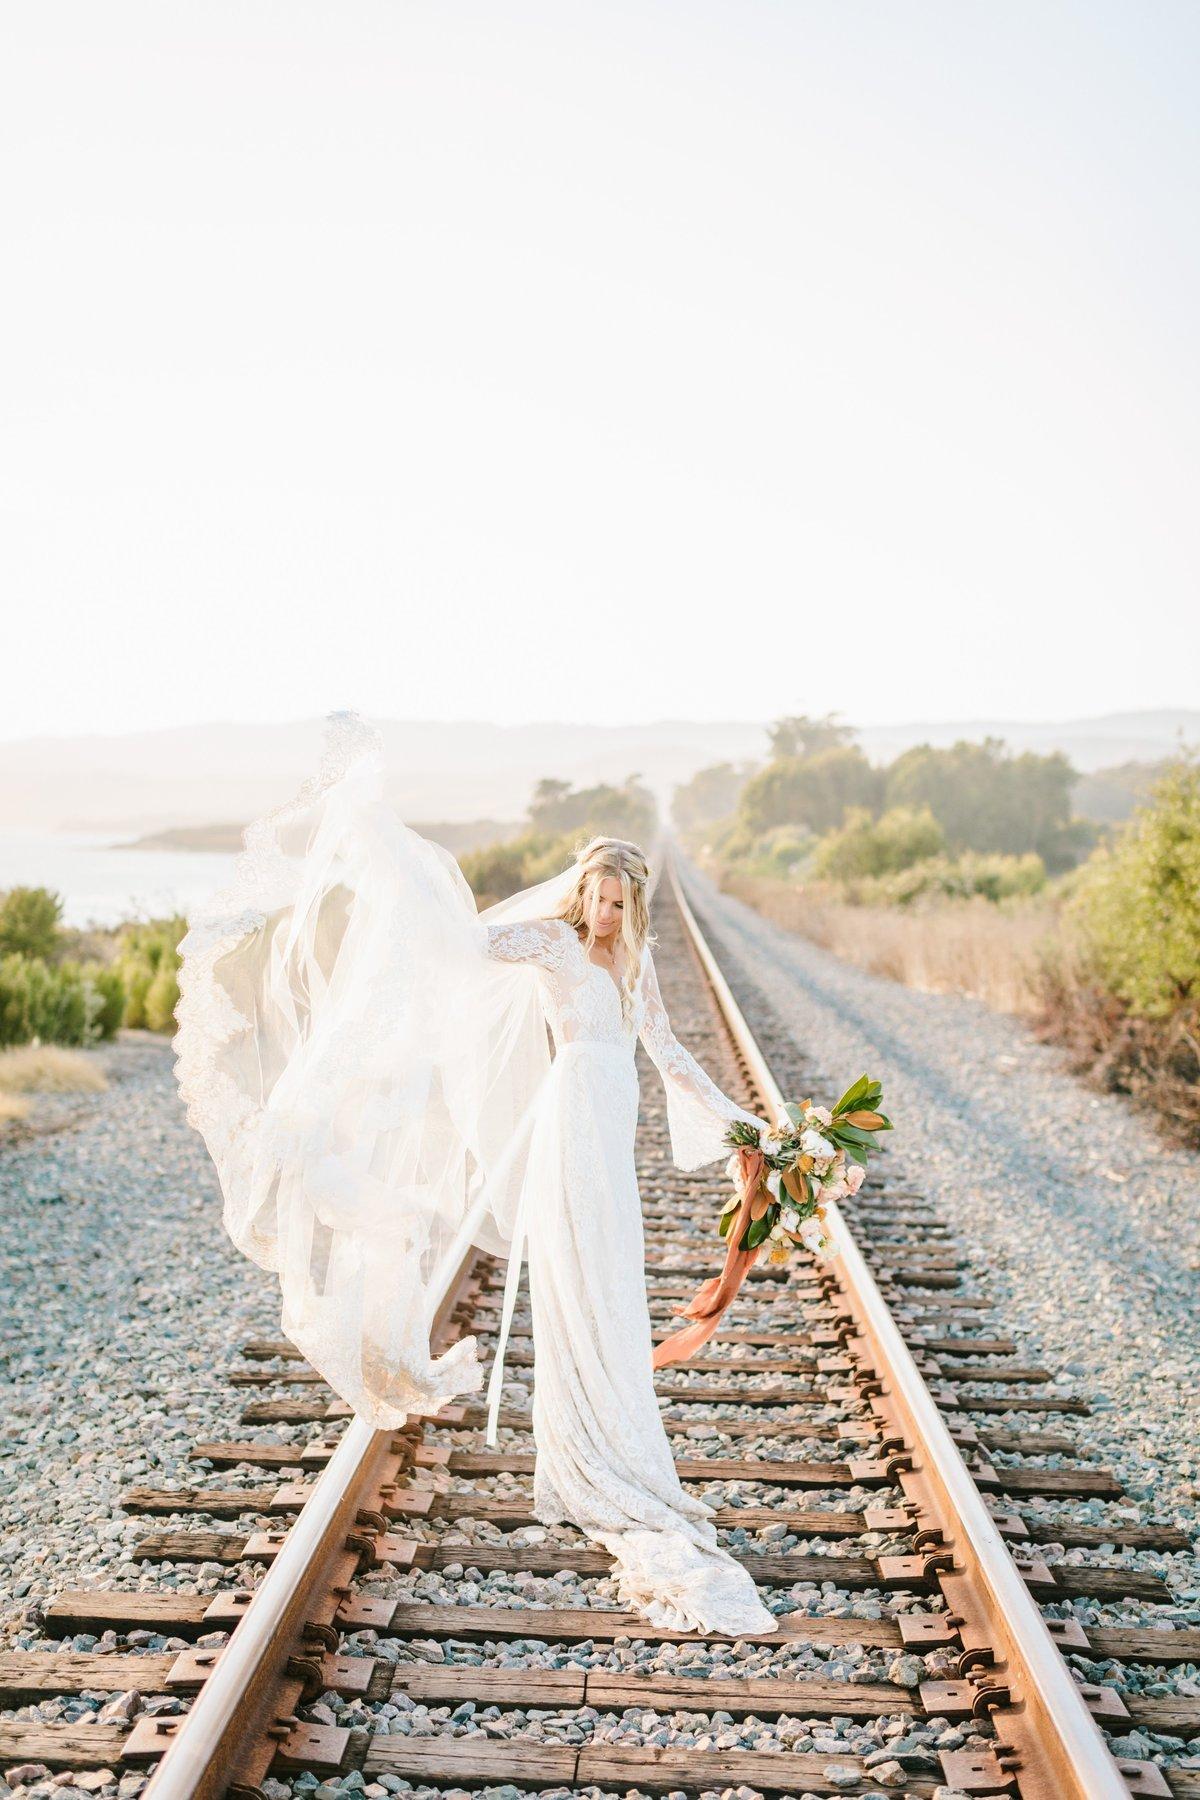 Best California Wedding Photographer-Jodee Debes Photography-250